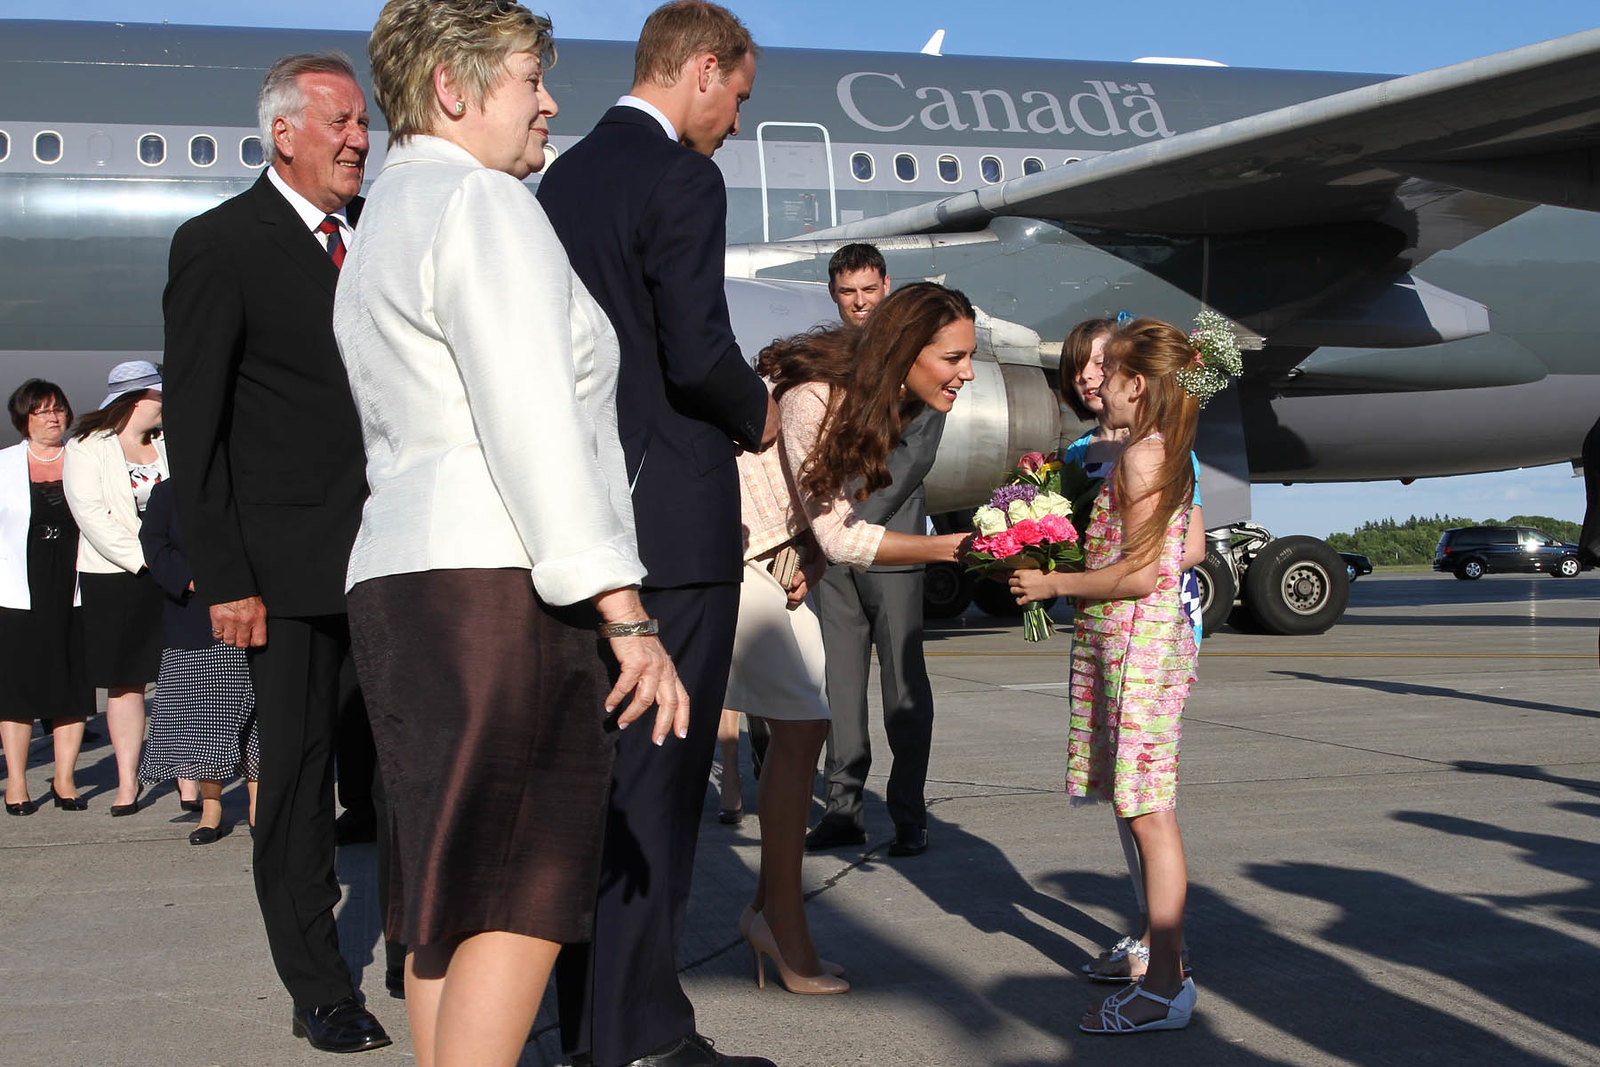 The Duke and Duchess of Cambridge touched down in Charlottetown during Canada tour